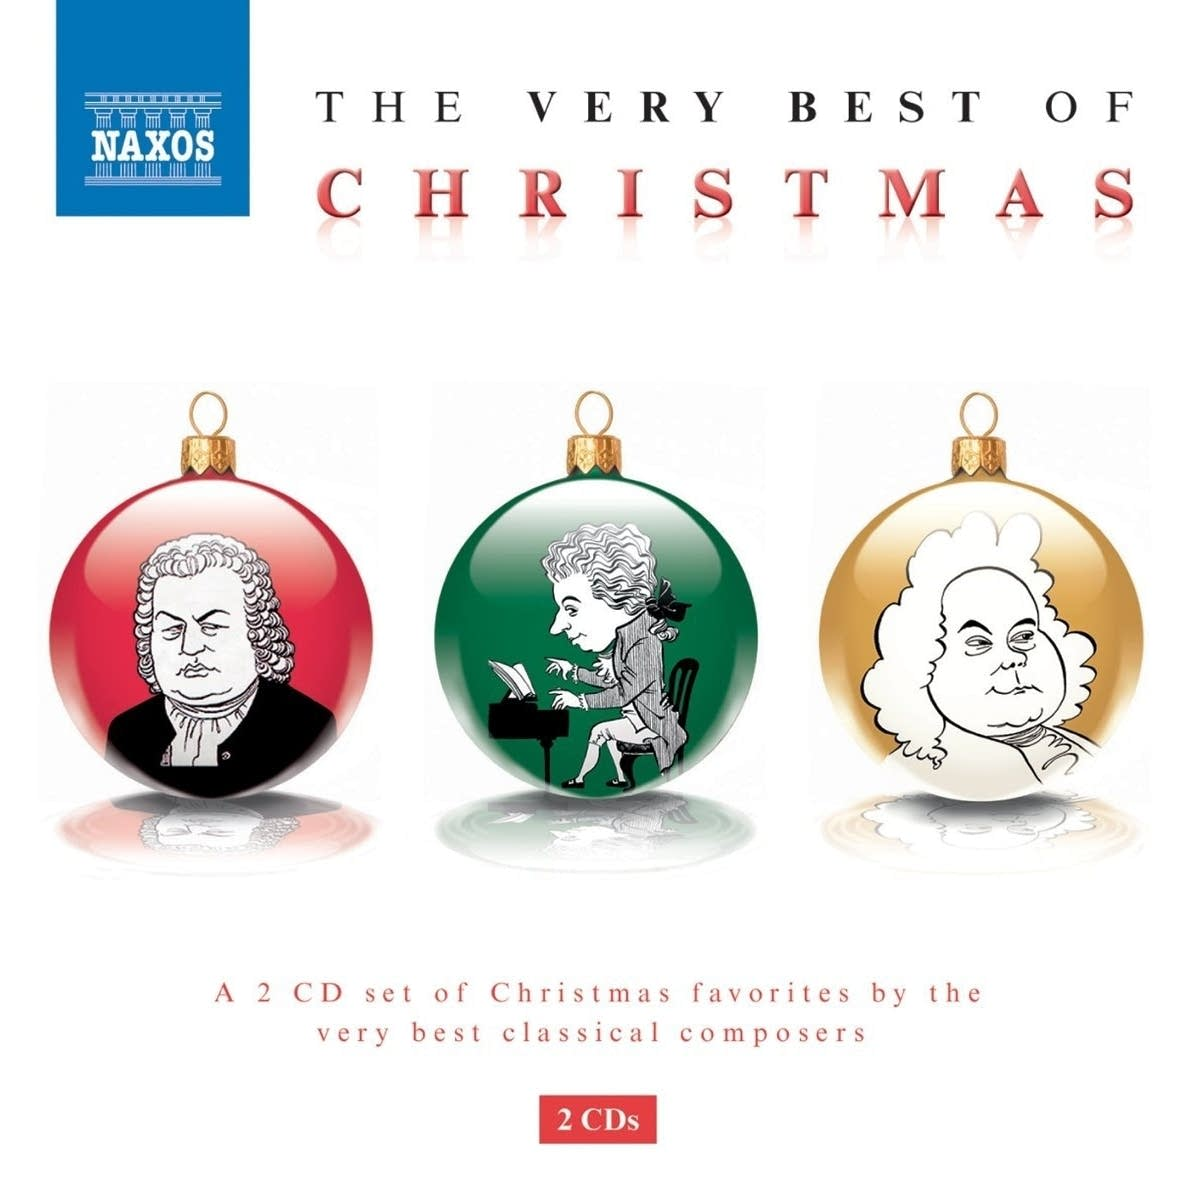 J.S. Bach - Christmas Oratorio: Part II Sinfonia